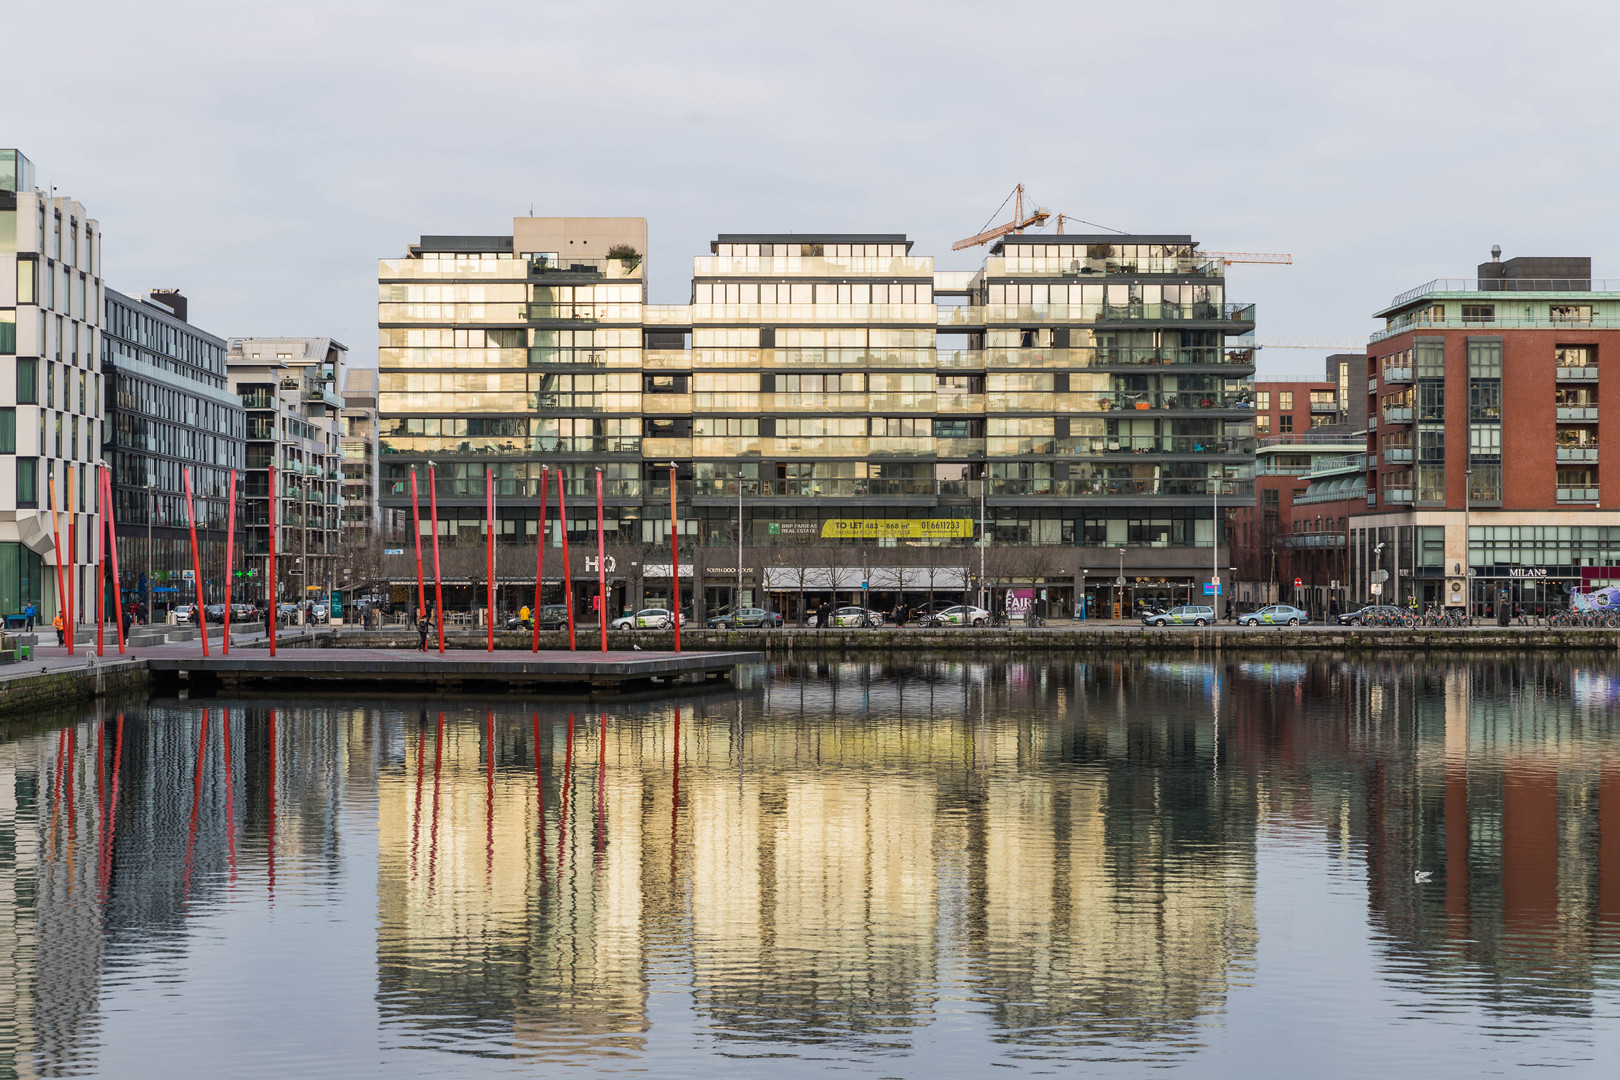 View of Hanover Quay across Grand Canal Dock in Dublin